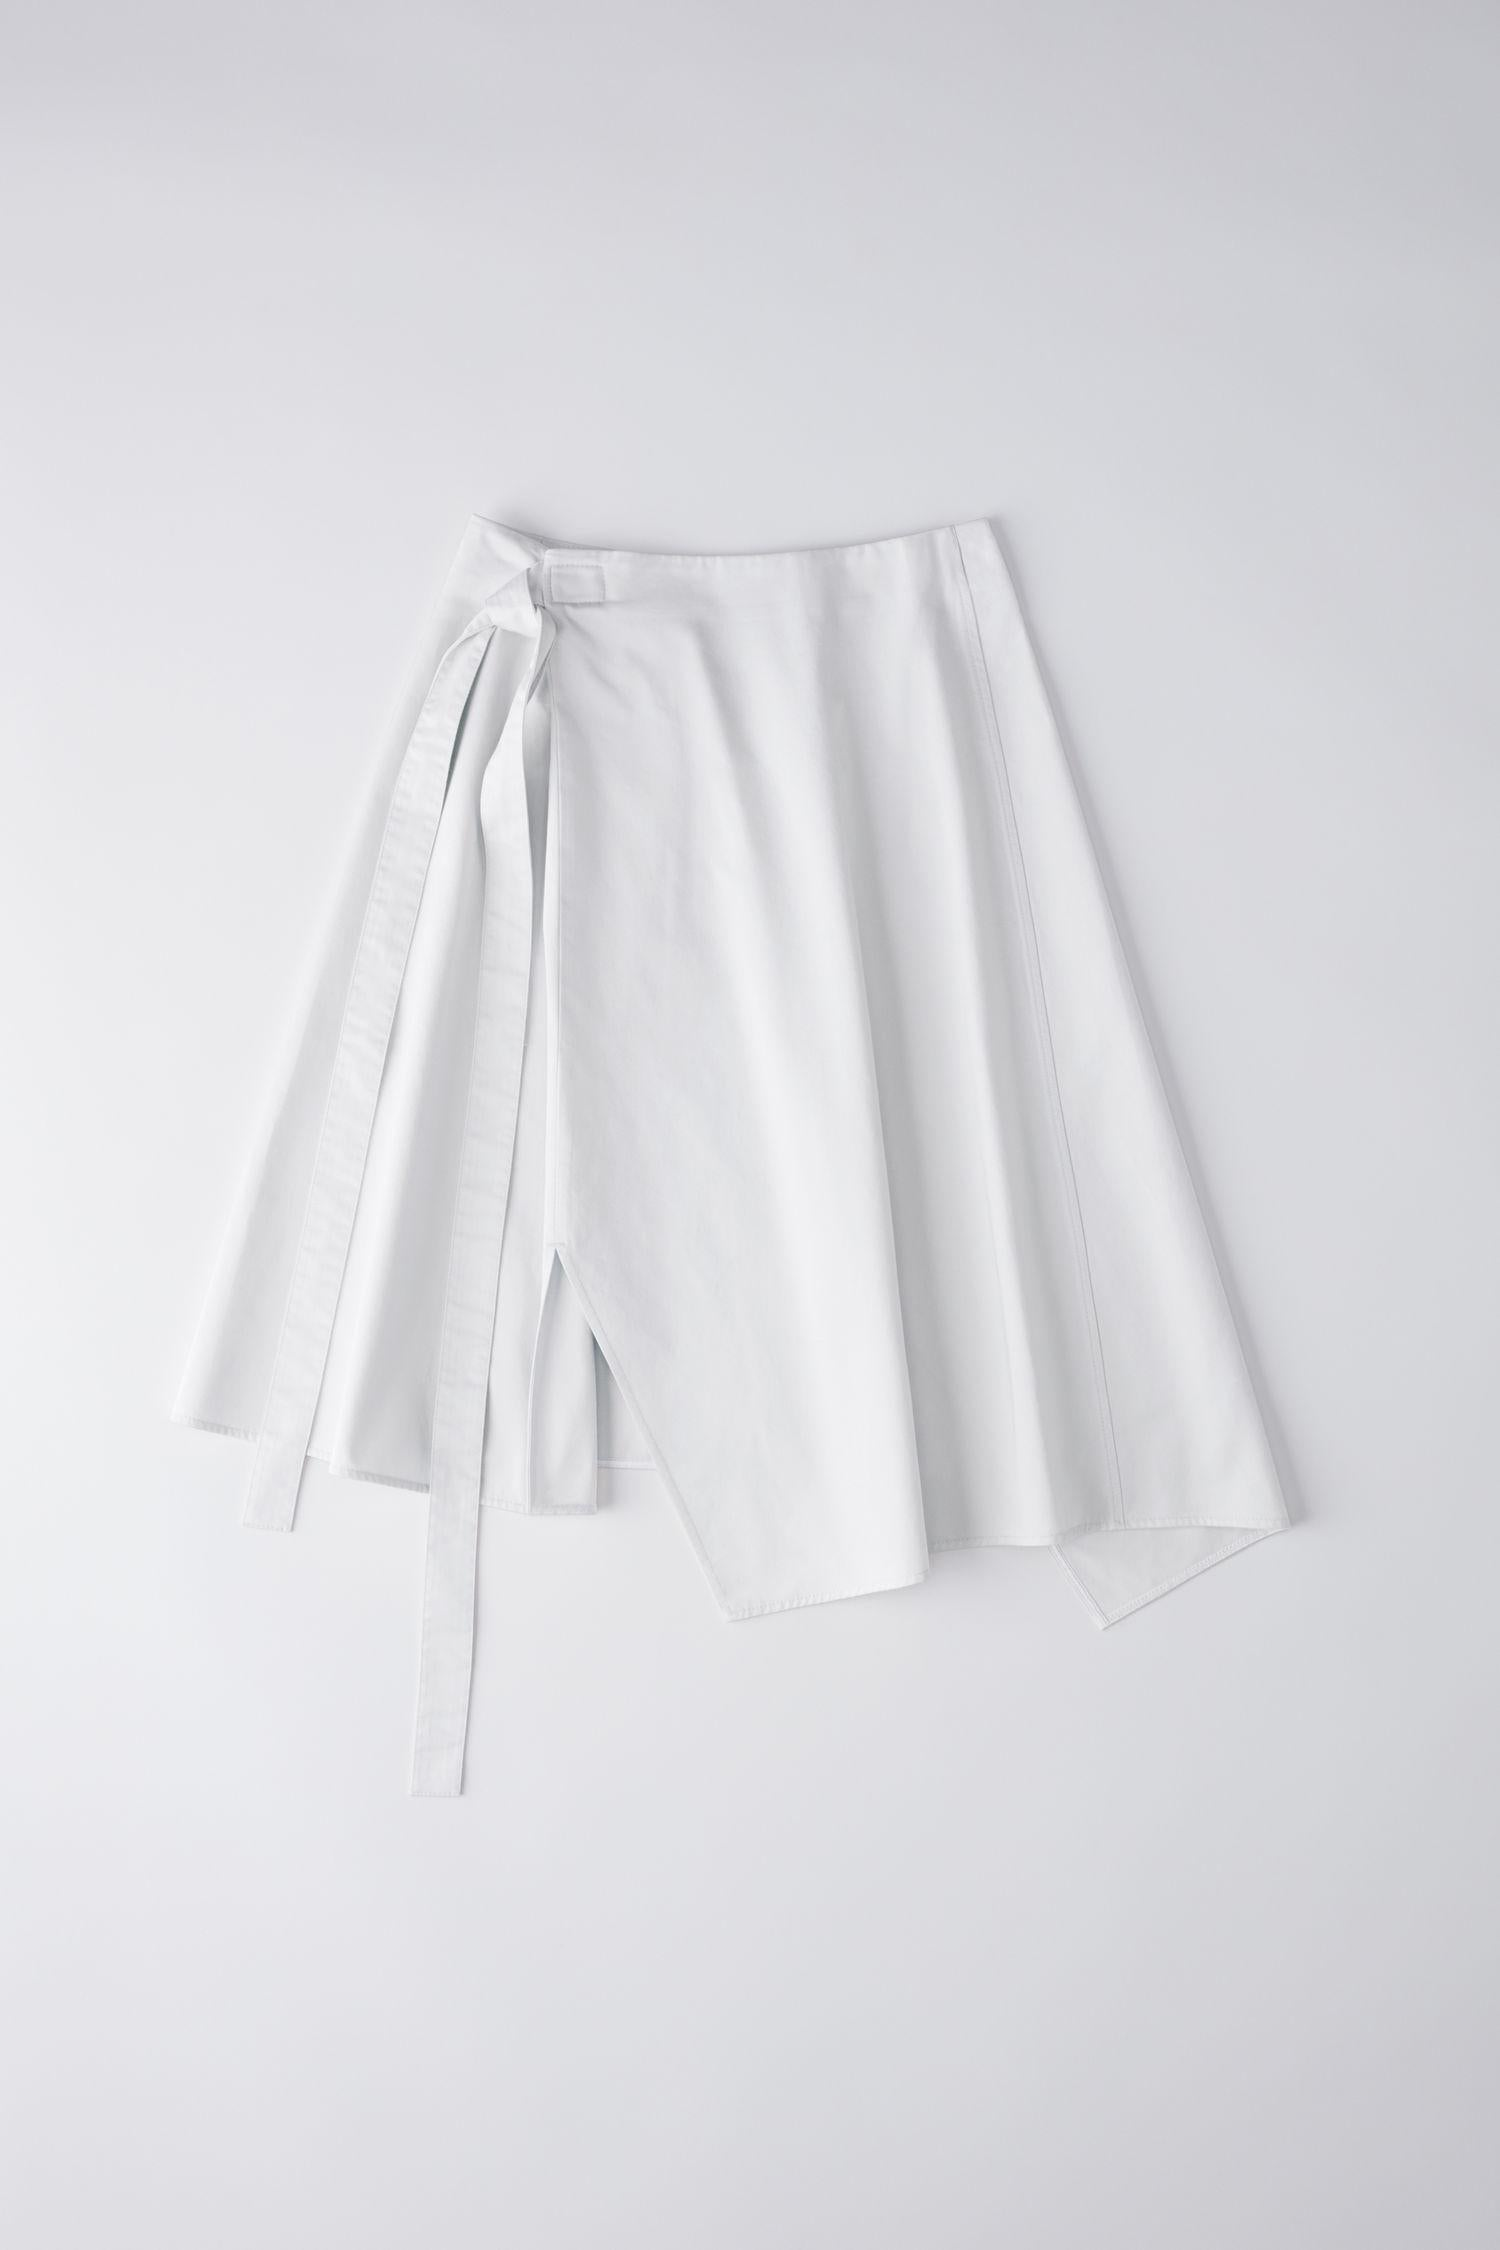 ACNE STUDIOS Piper Co Satin Asymetric Cotton Skirt, SIZE M - secondfirst